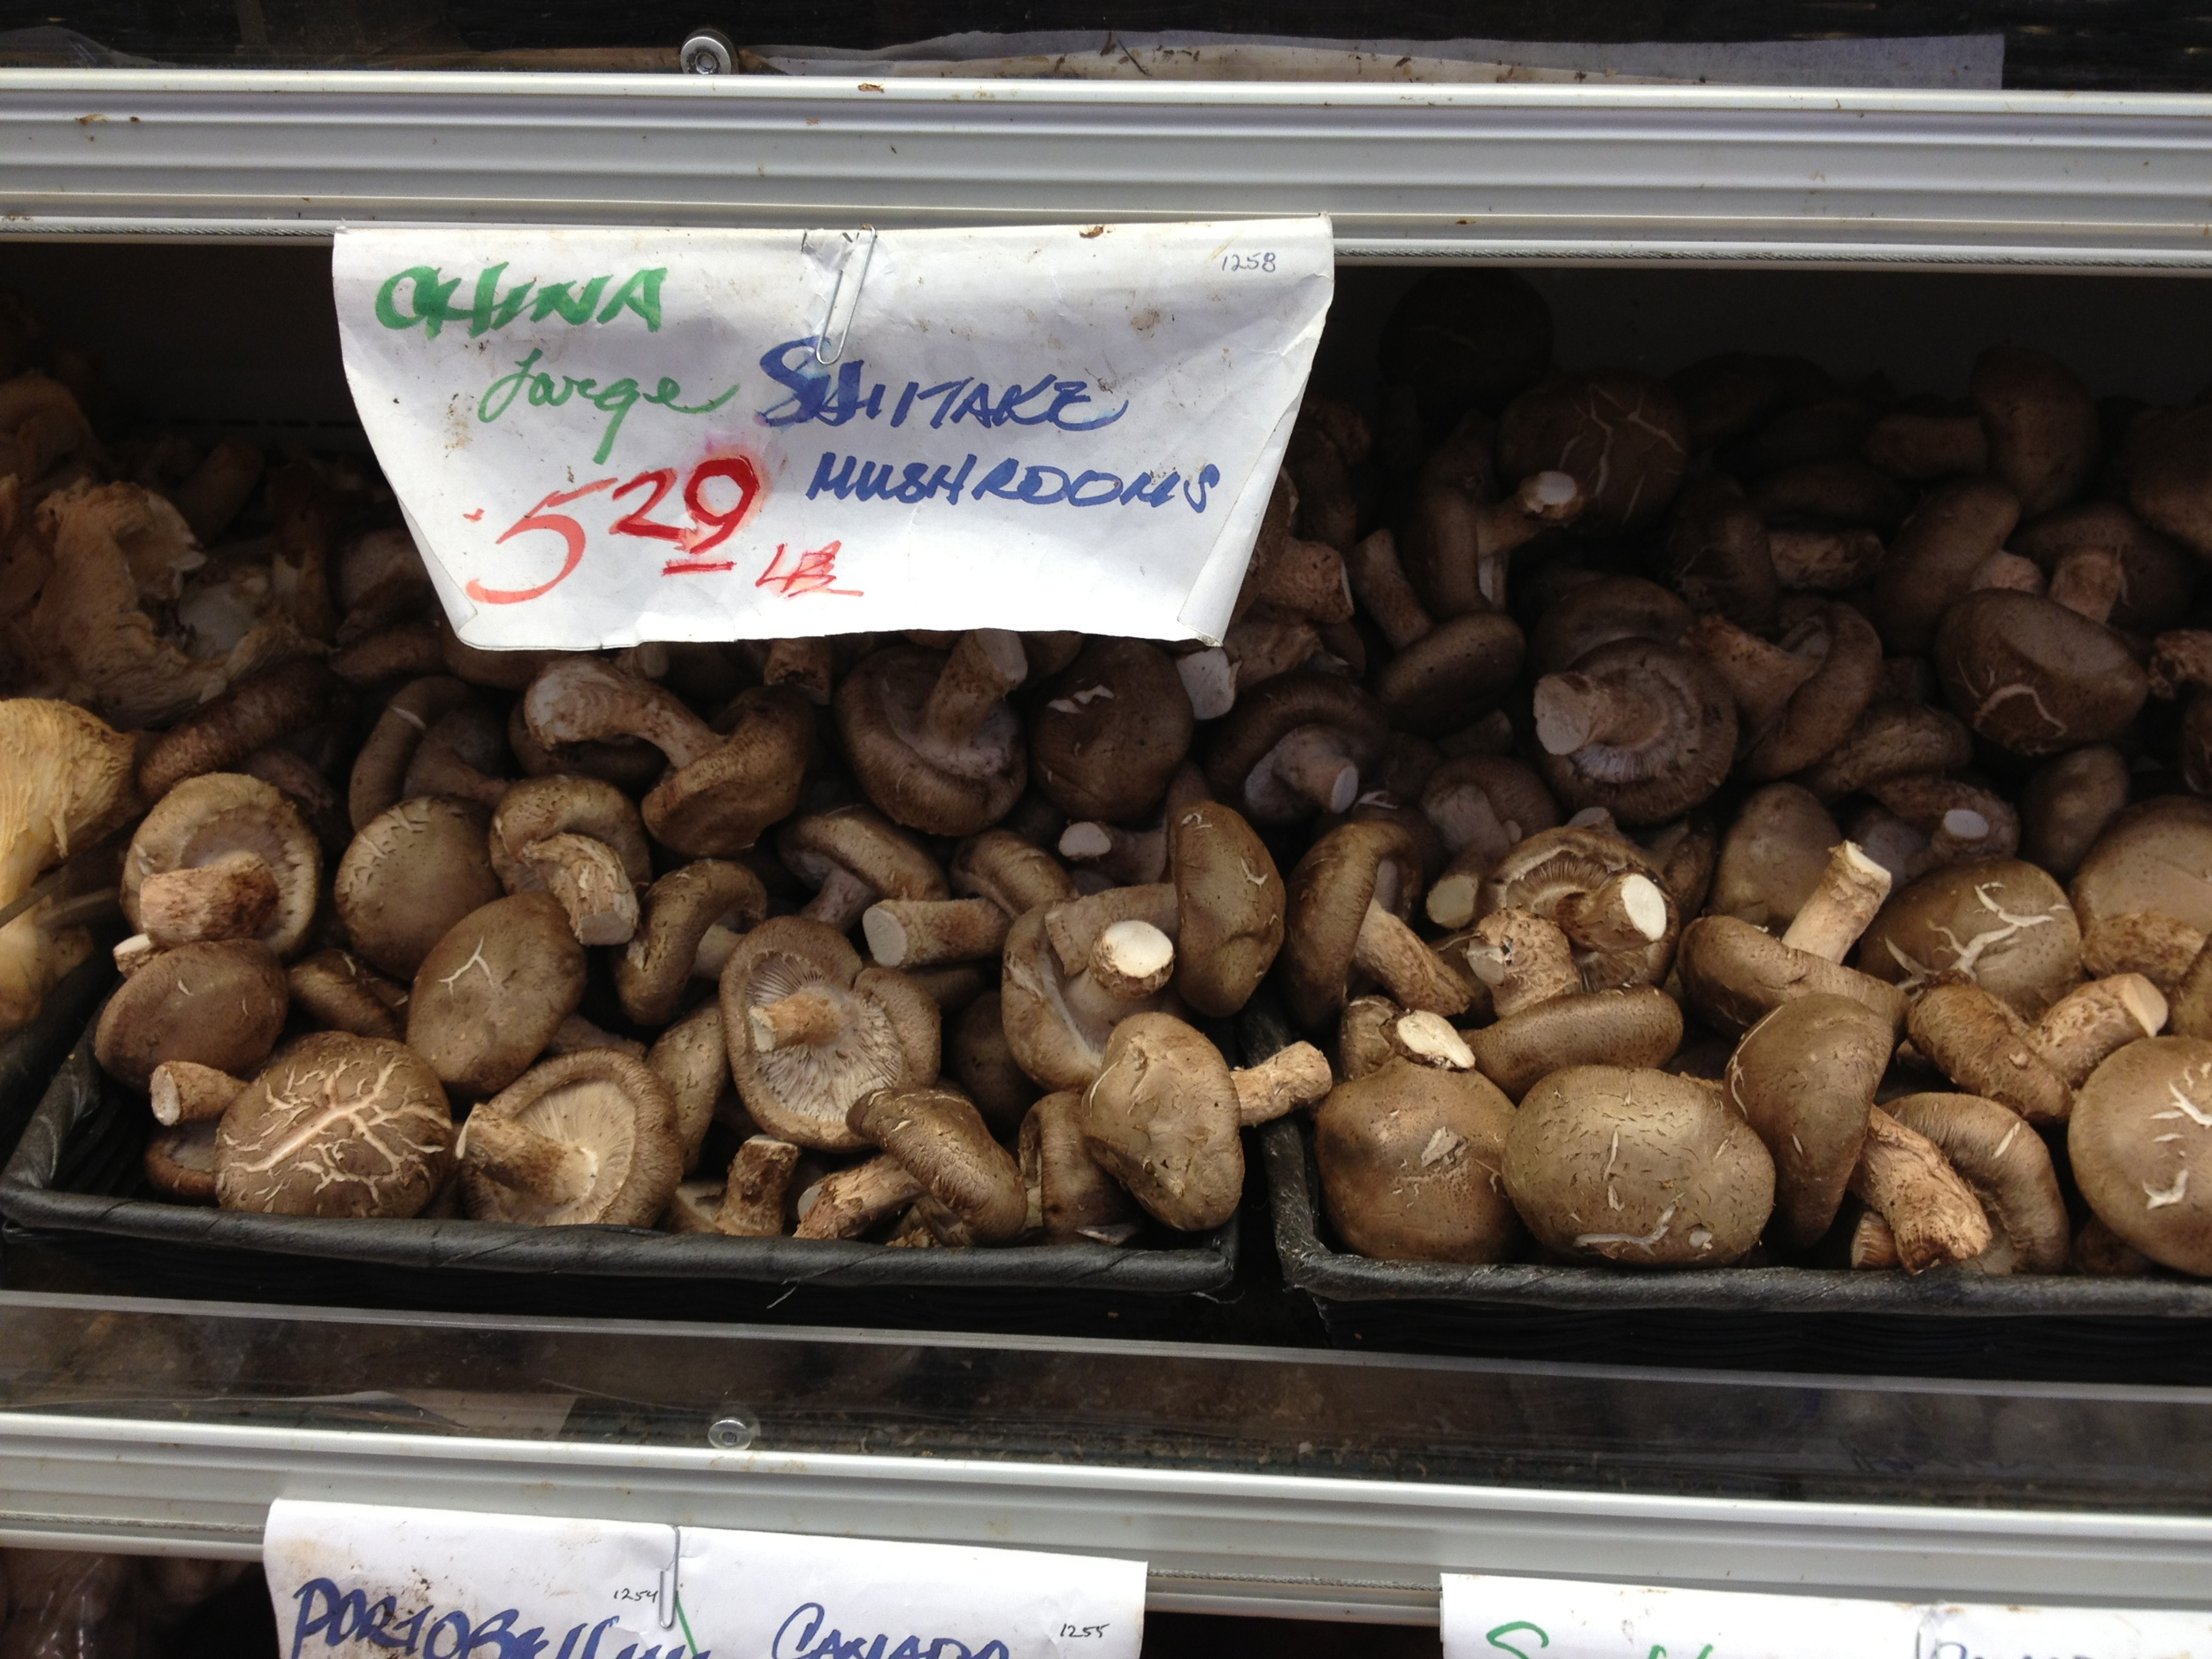 Fresh shiitake mushrooms are also agood non-animal source of ironand protein, magnesium, and vitamin D.